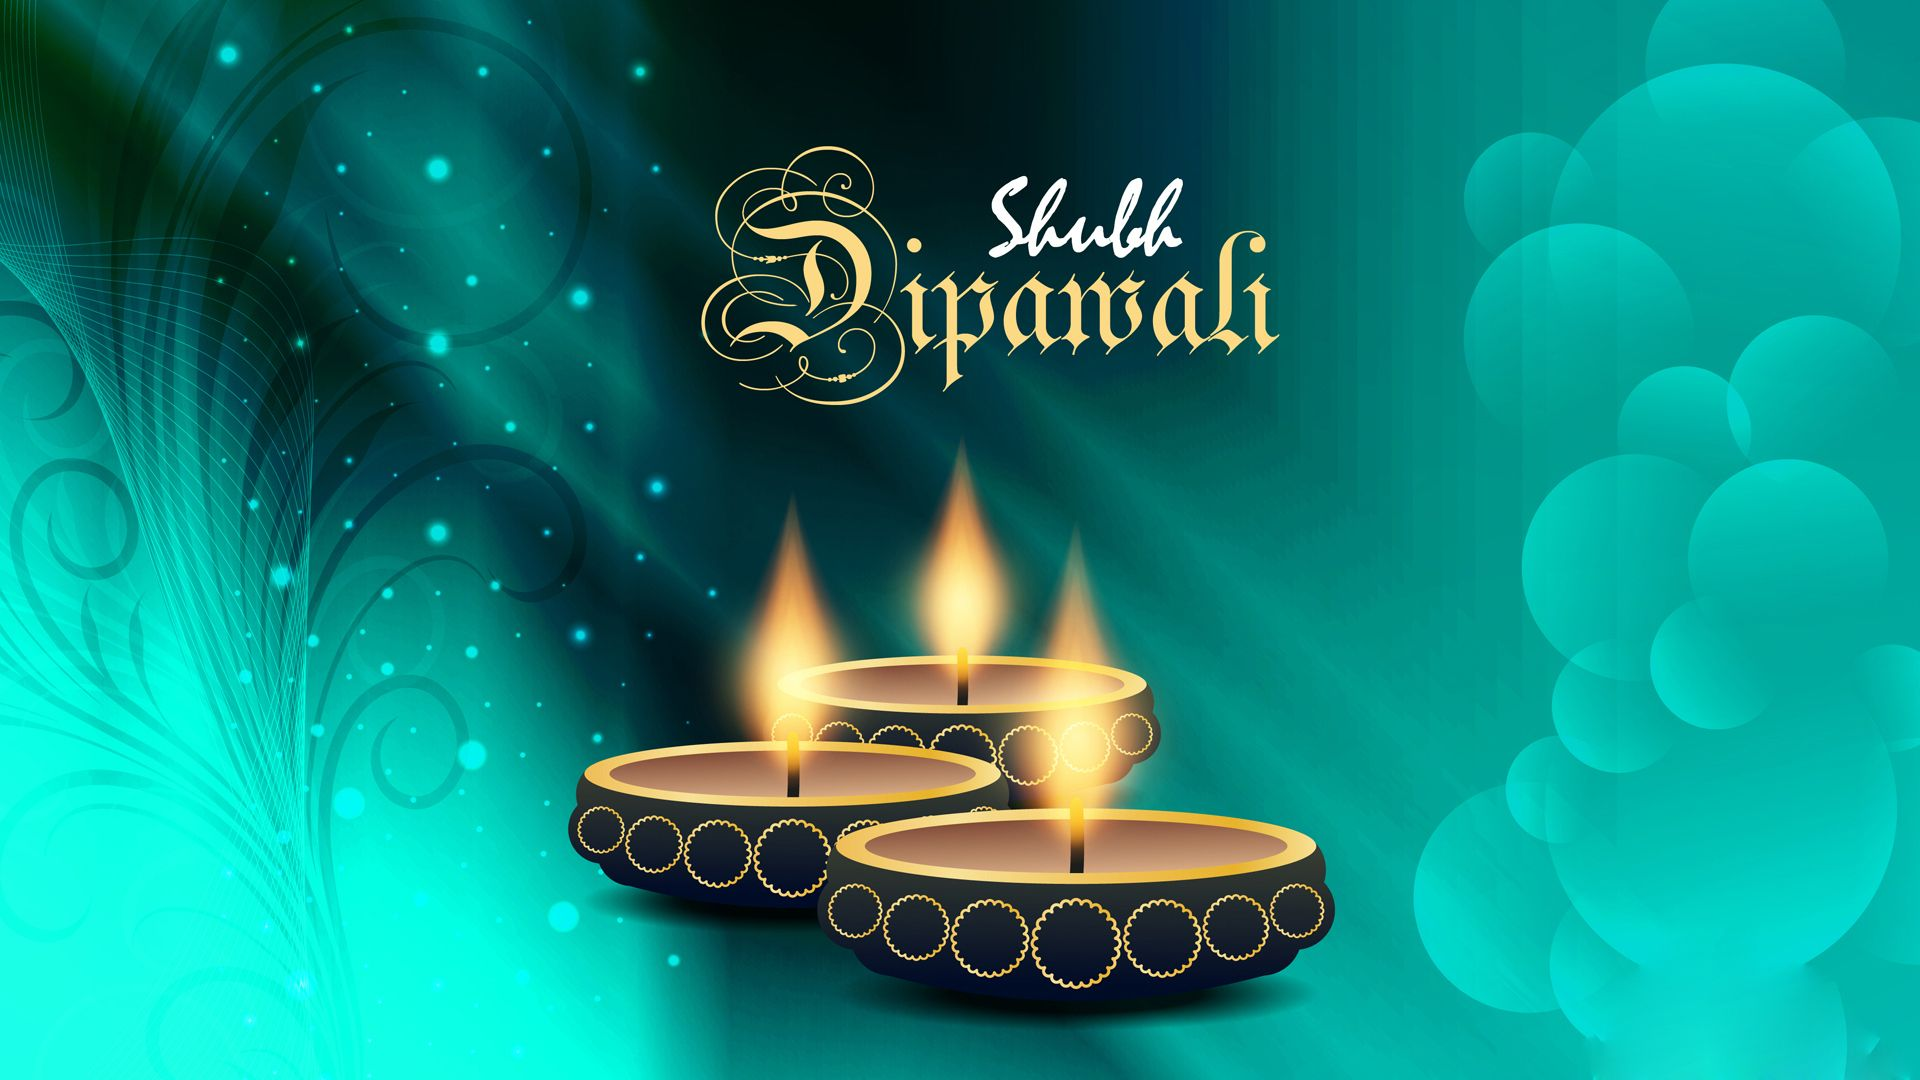 Cute Lovely Fb Wallpaper Cover Photos Nature Love Hd Latest 1600 593 Fb Wallpapers 53 Wallpapers Happy Diwali Wallpapers Happy Diwali Images Diwali Pictures Happy diwali hd wallpaper download